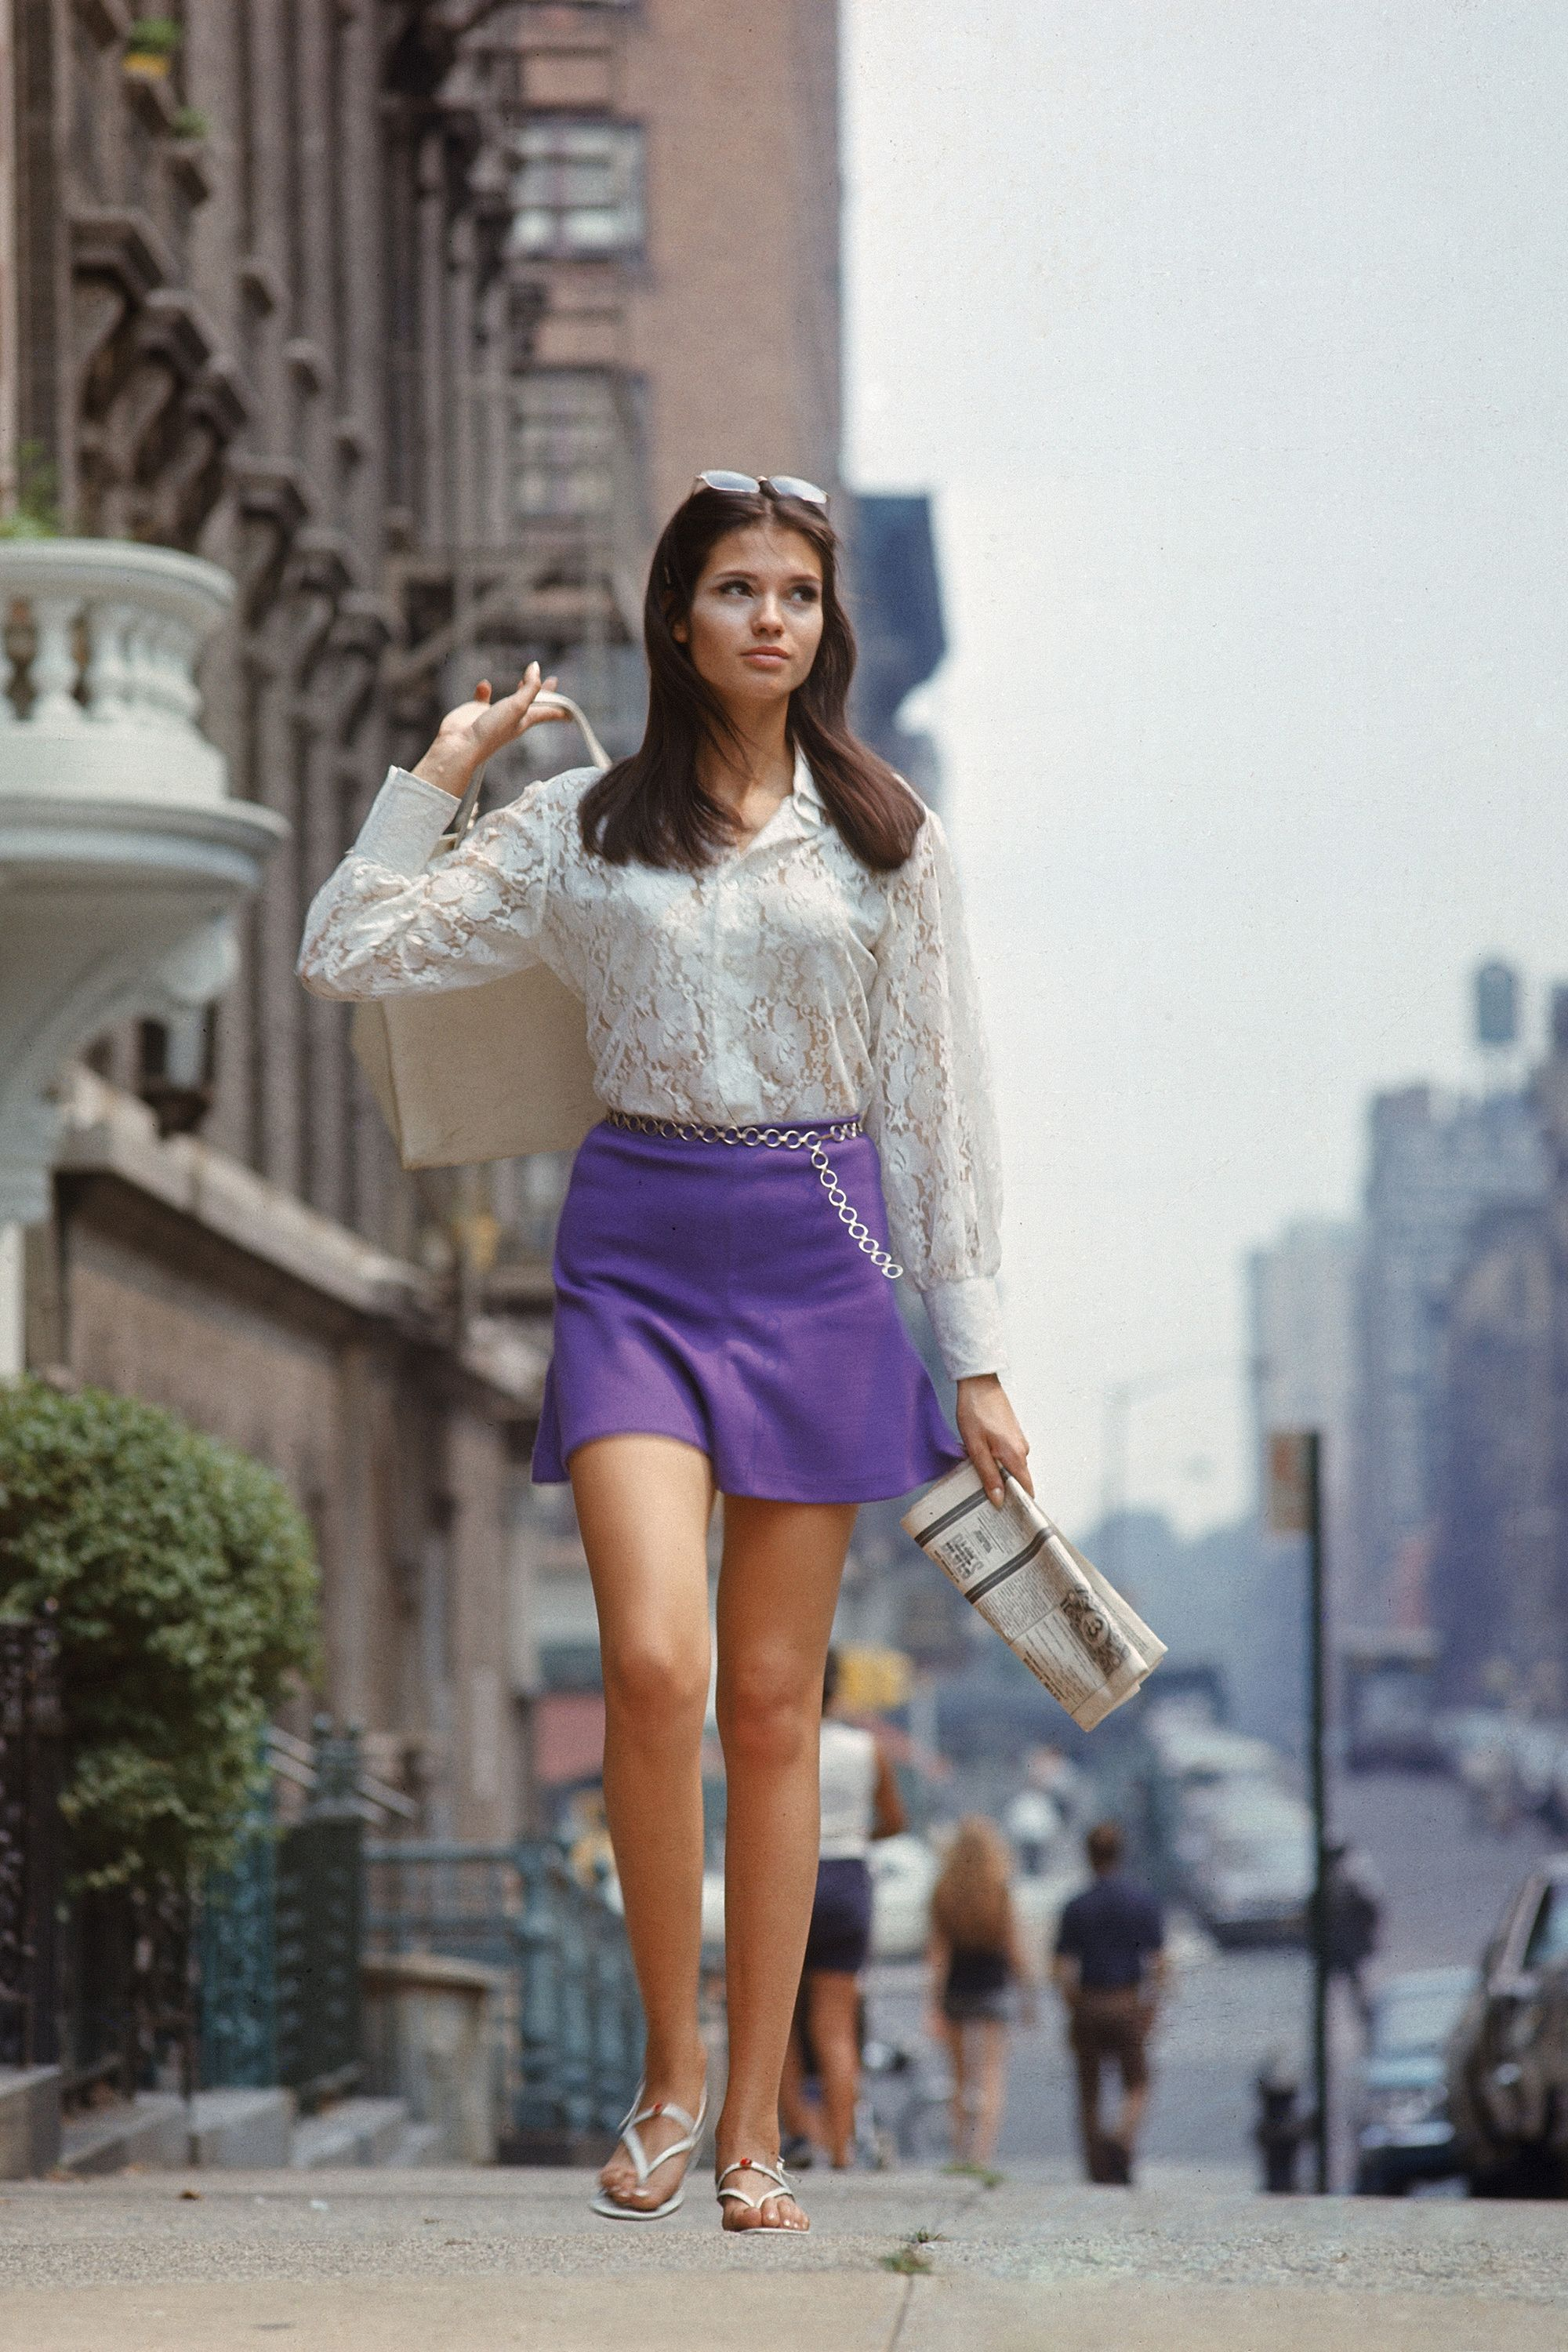 """Woman (possibly model), w. long hair wearing short skirt, lace top &amp&#x3B; sandals, walking up street, re story on """"New York look"""" in fashion."""